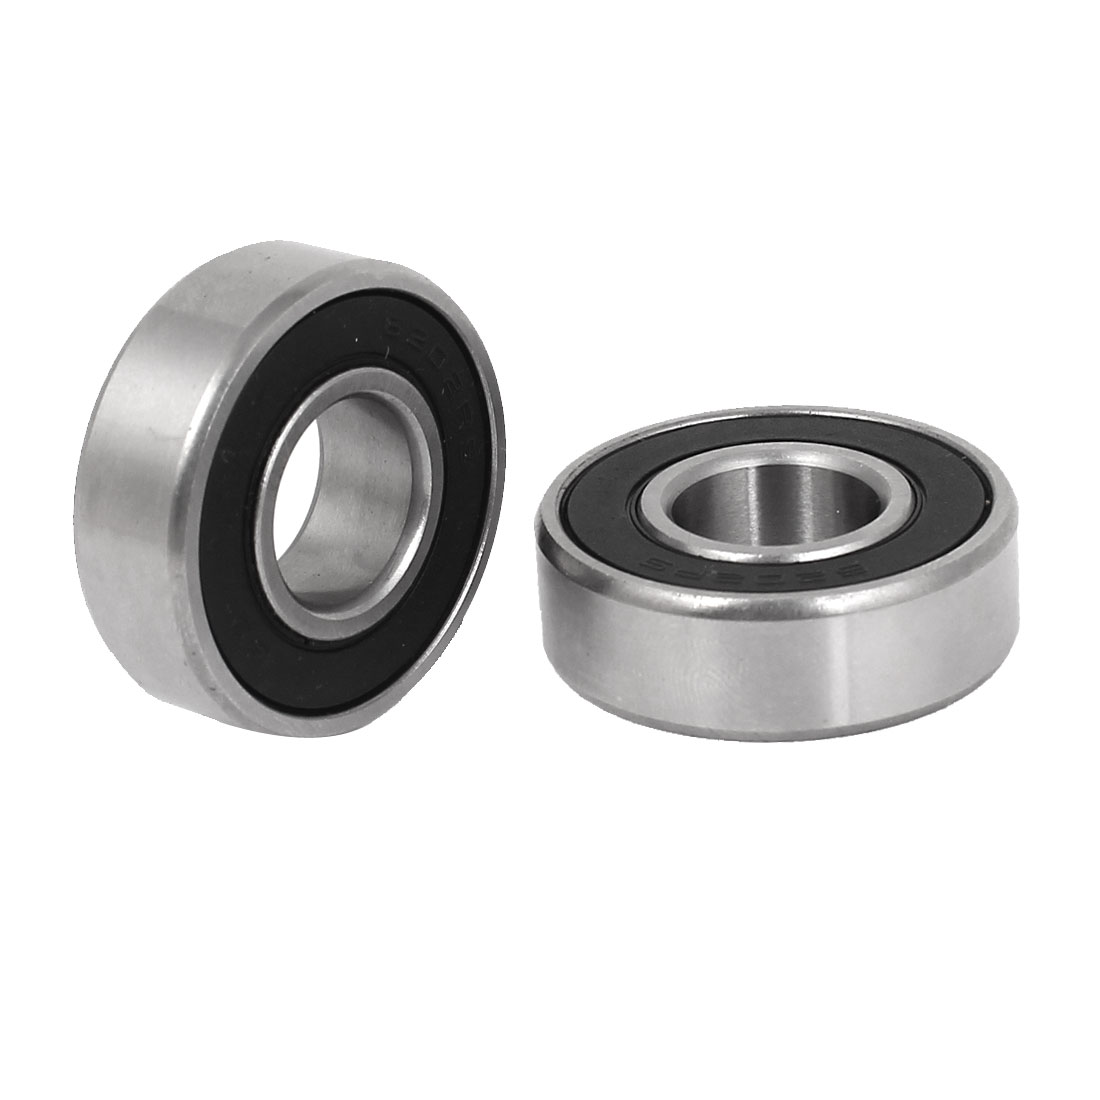 2 Pcs 6202RS 15mmx35mmx11mm Sealed Deep Groove Radial Ball Bearings